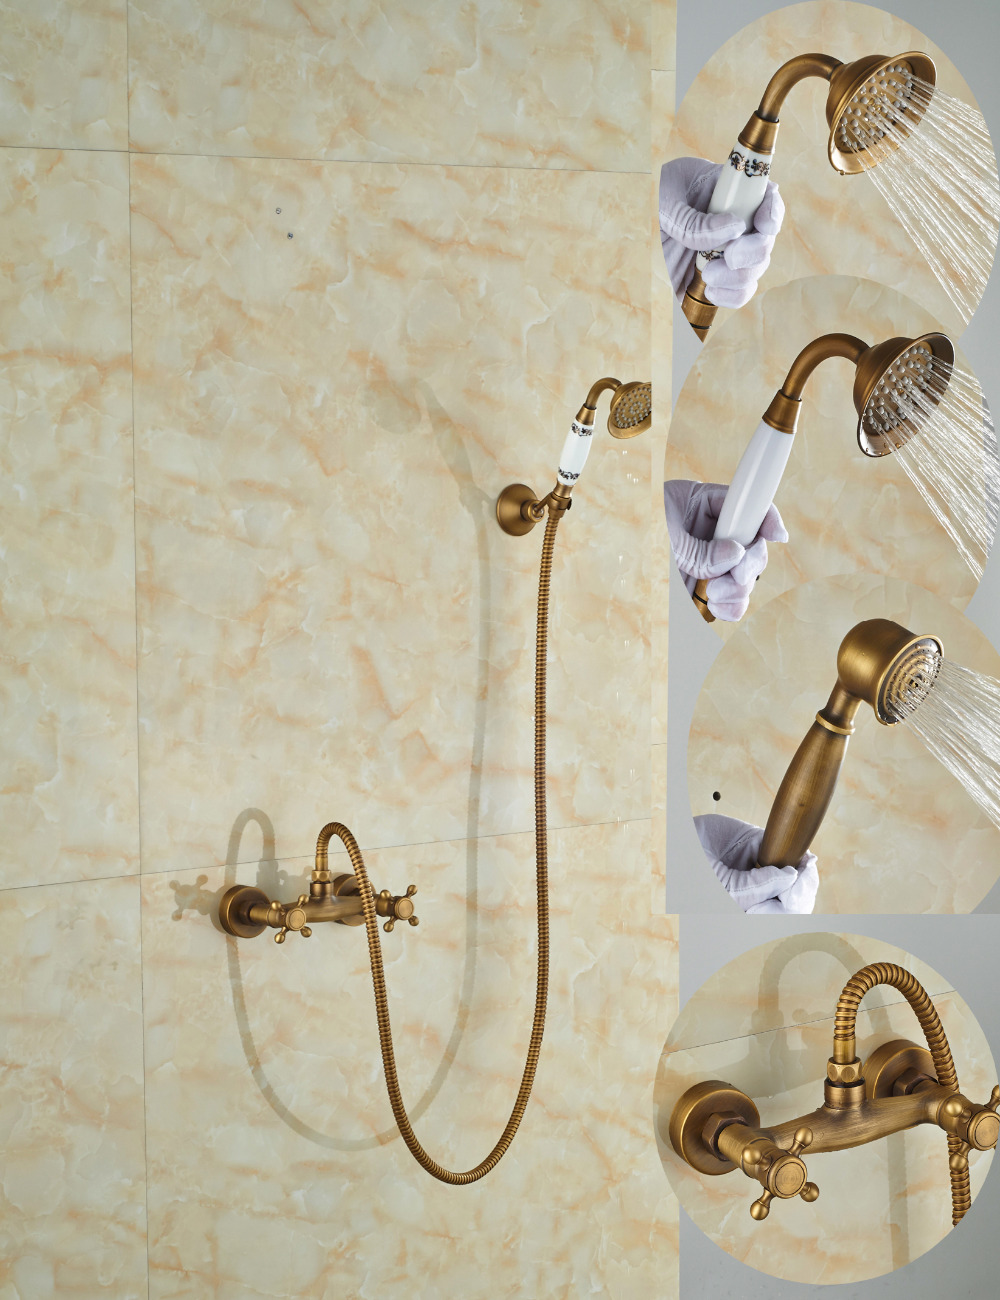 Wholesale And Retail Promotion Classic Antique Brass Bathroom Tub Faucet Dual Cross Handles W/ Handhelf Shower Sprayer